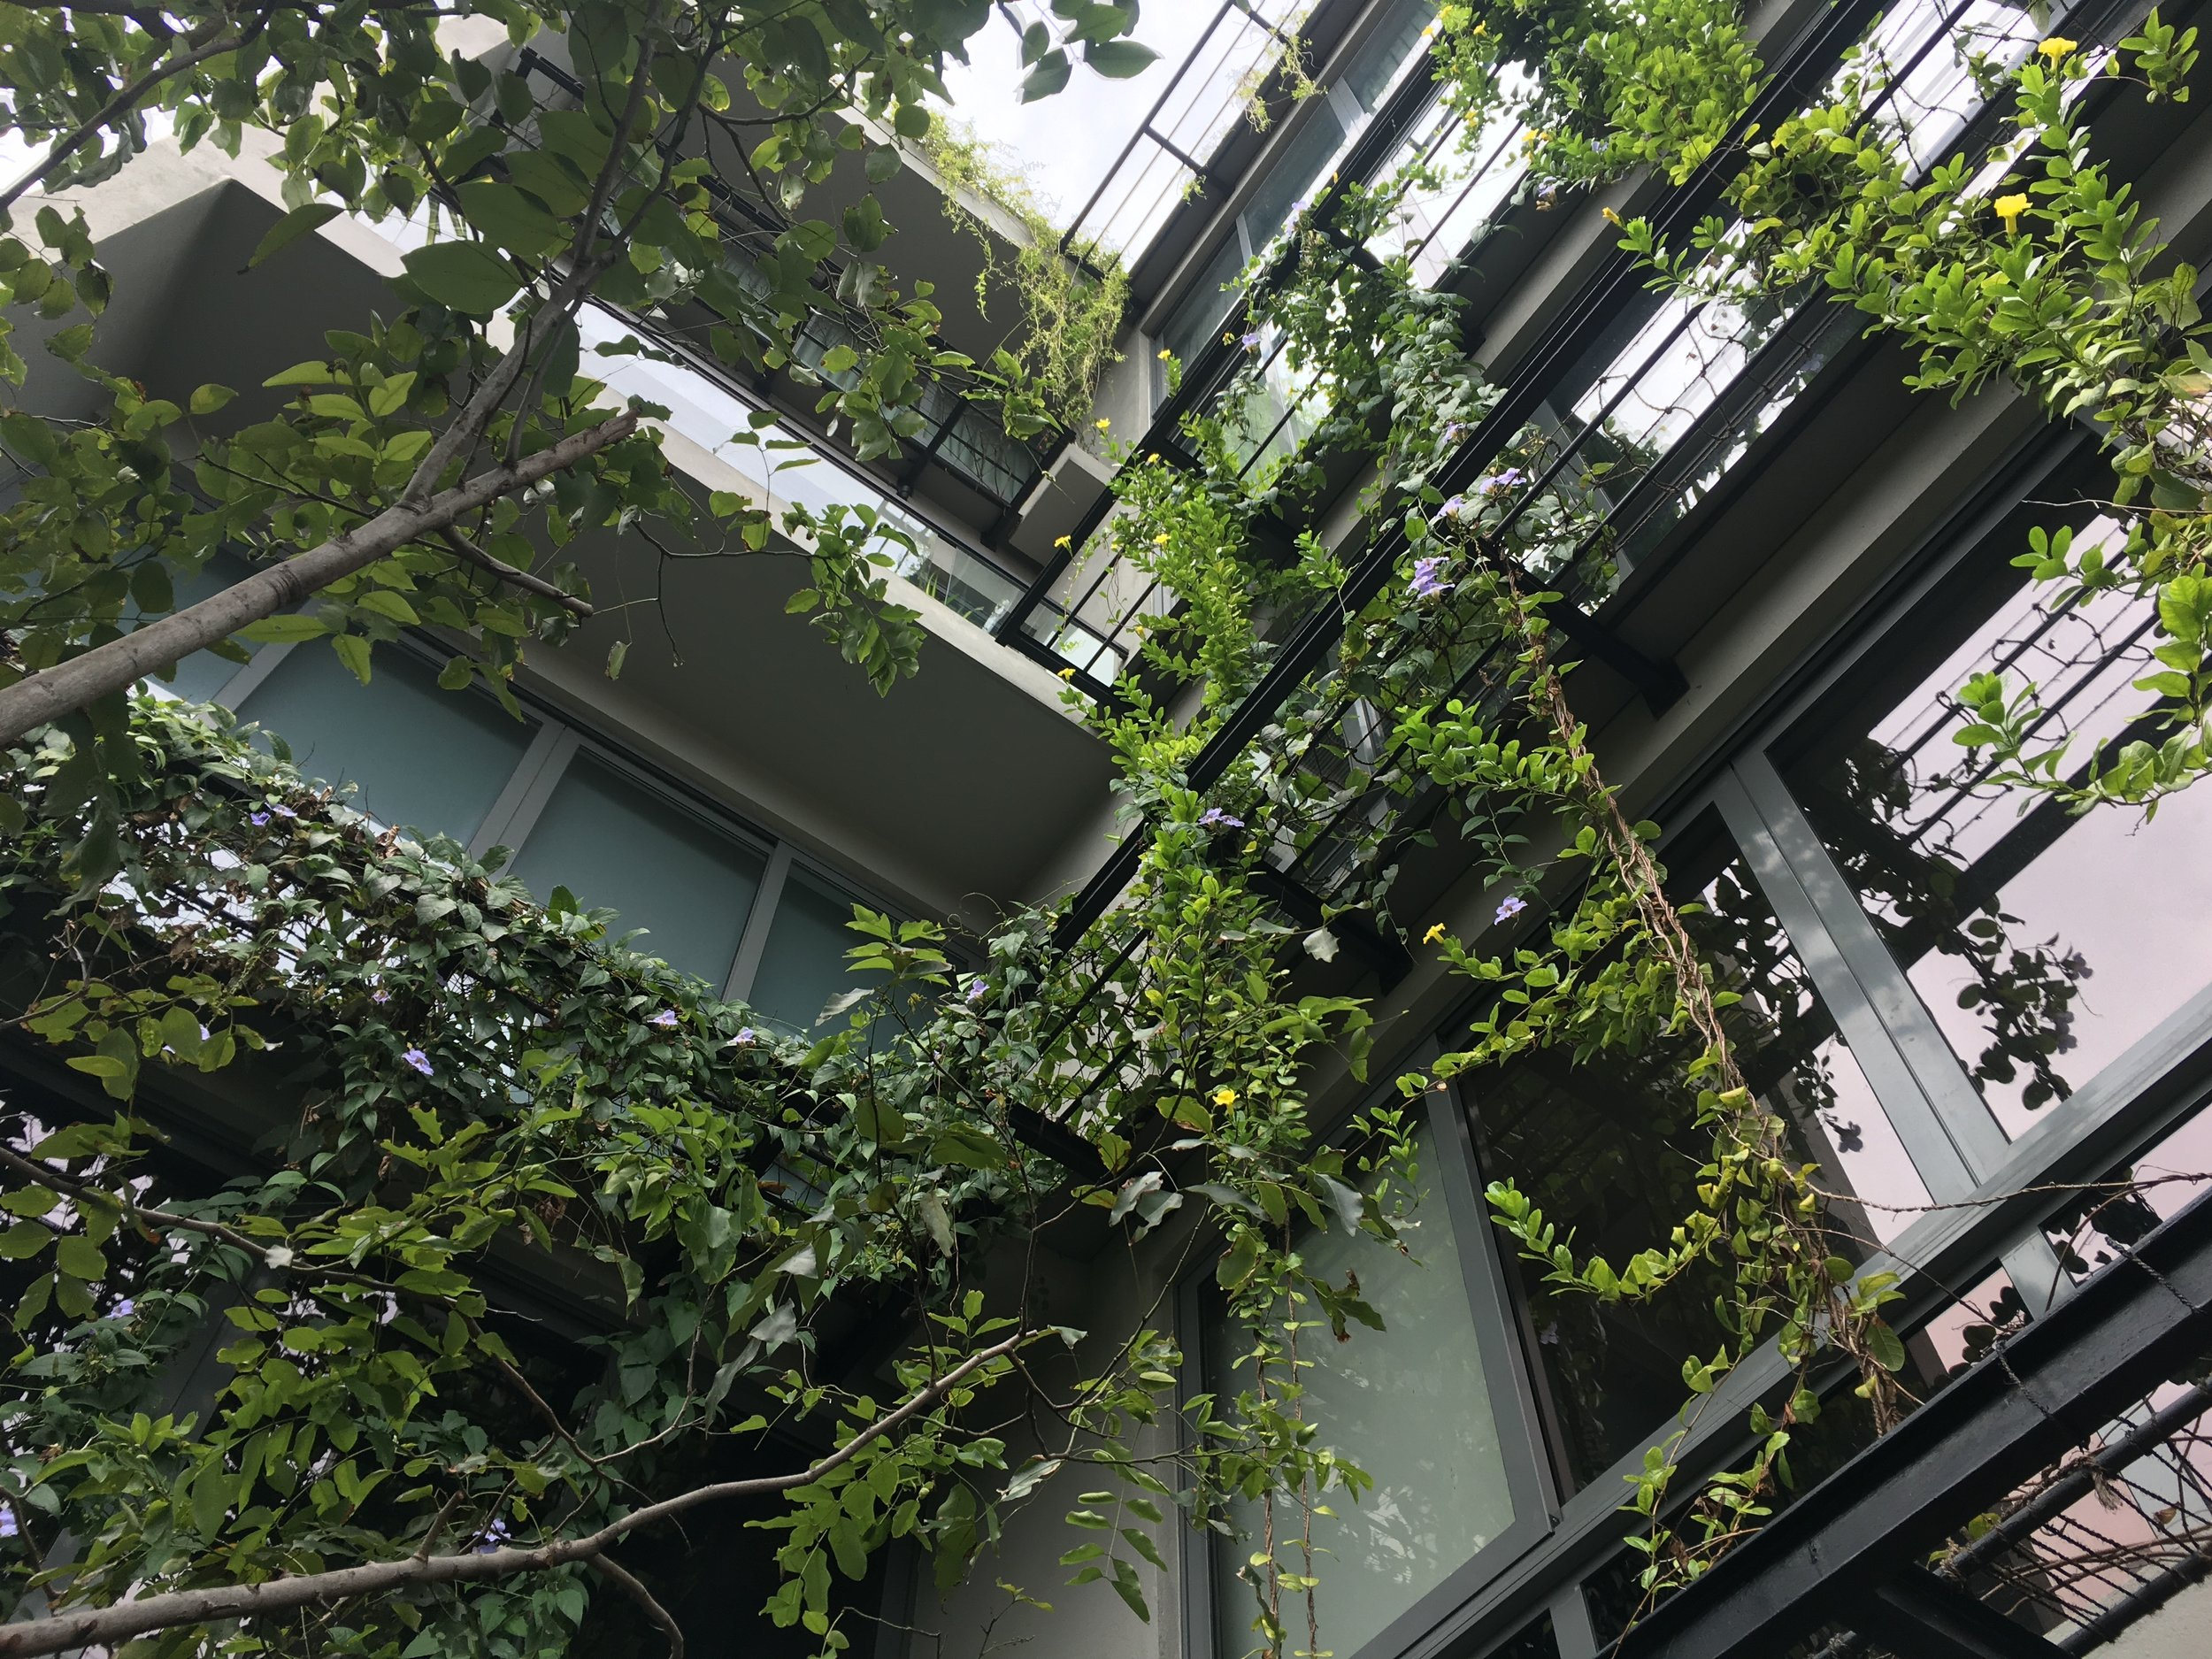 The Ebony Tree apartments, central Colombo - mid-rise urban architecture accommodating nature to draw the outside in